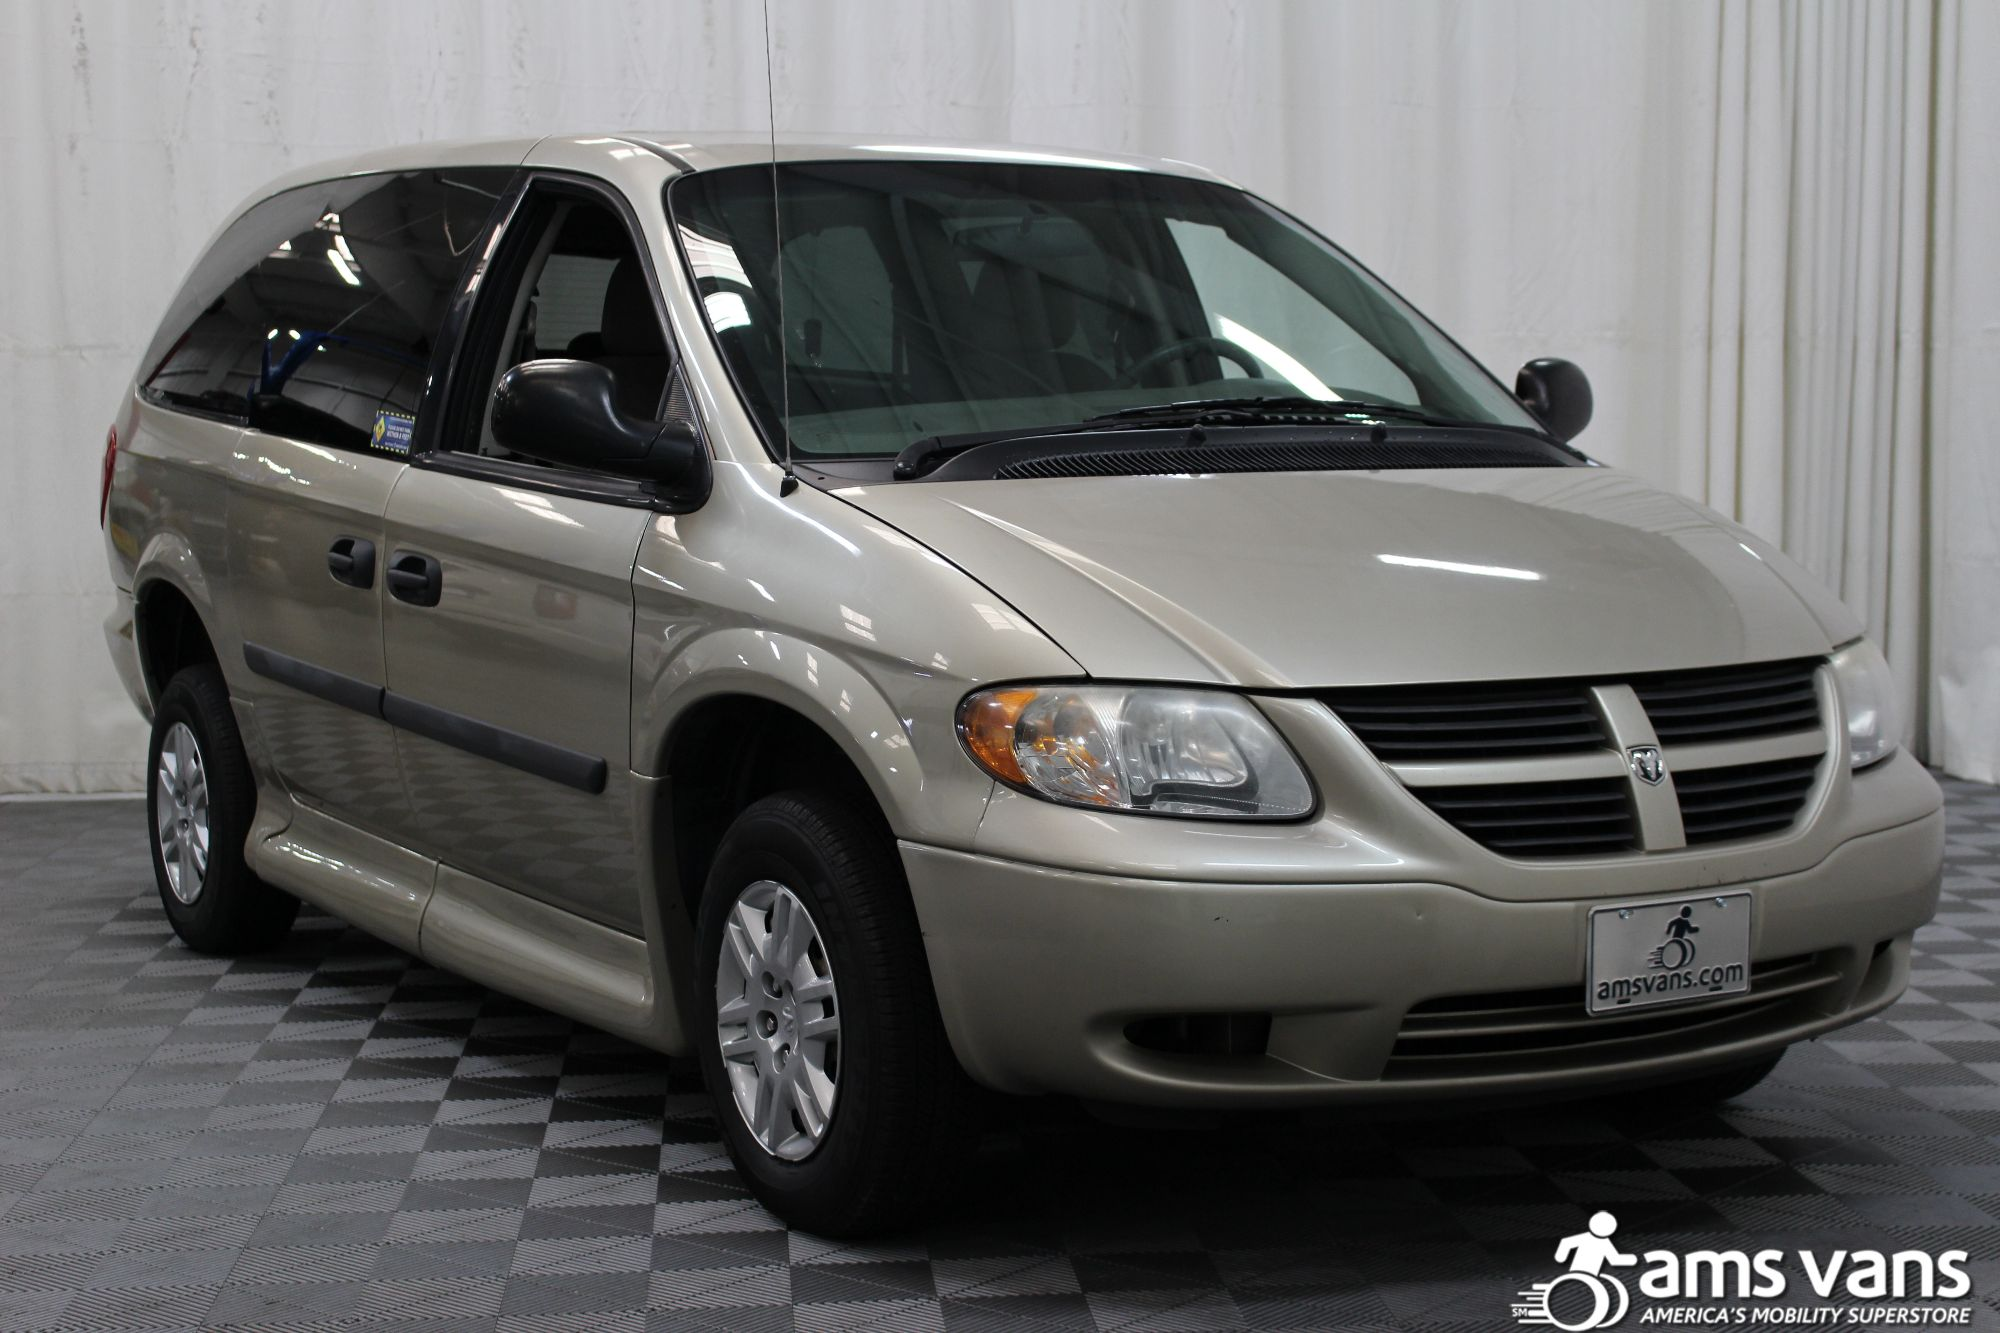 2007 Dodge Grand Caravan SE Wheelchair Van For Sale #11